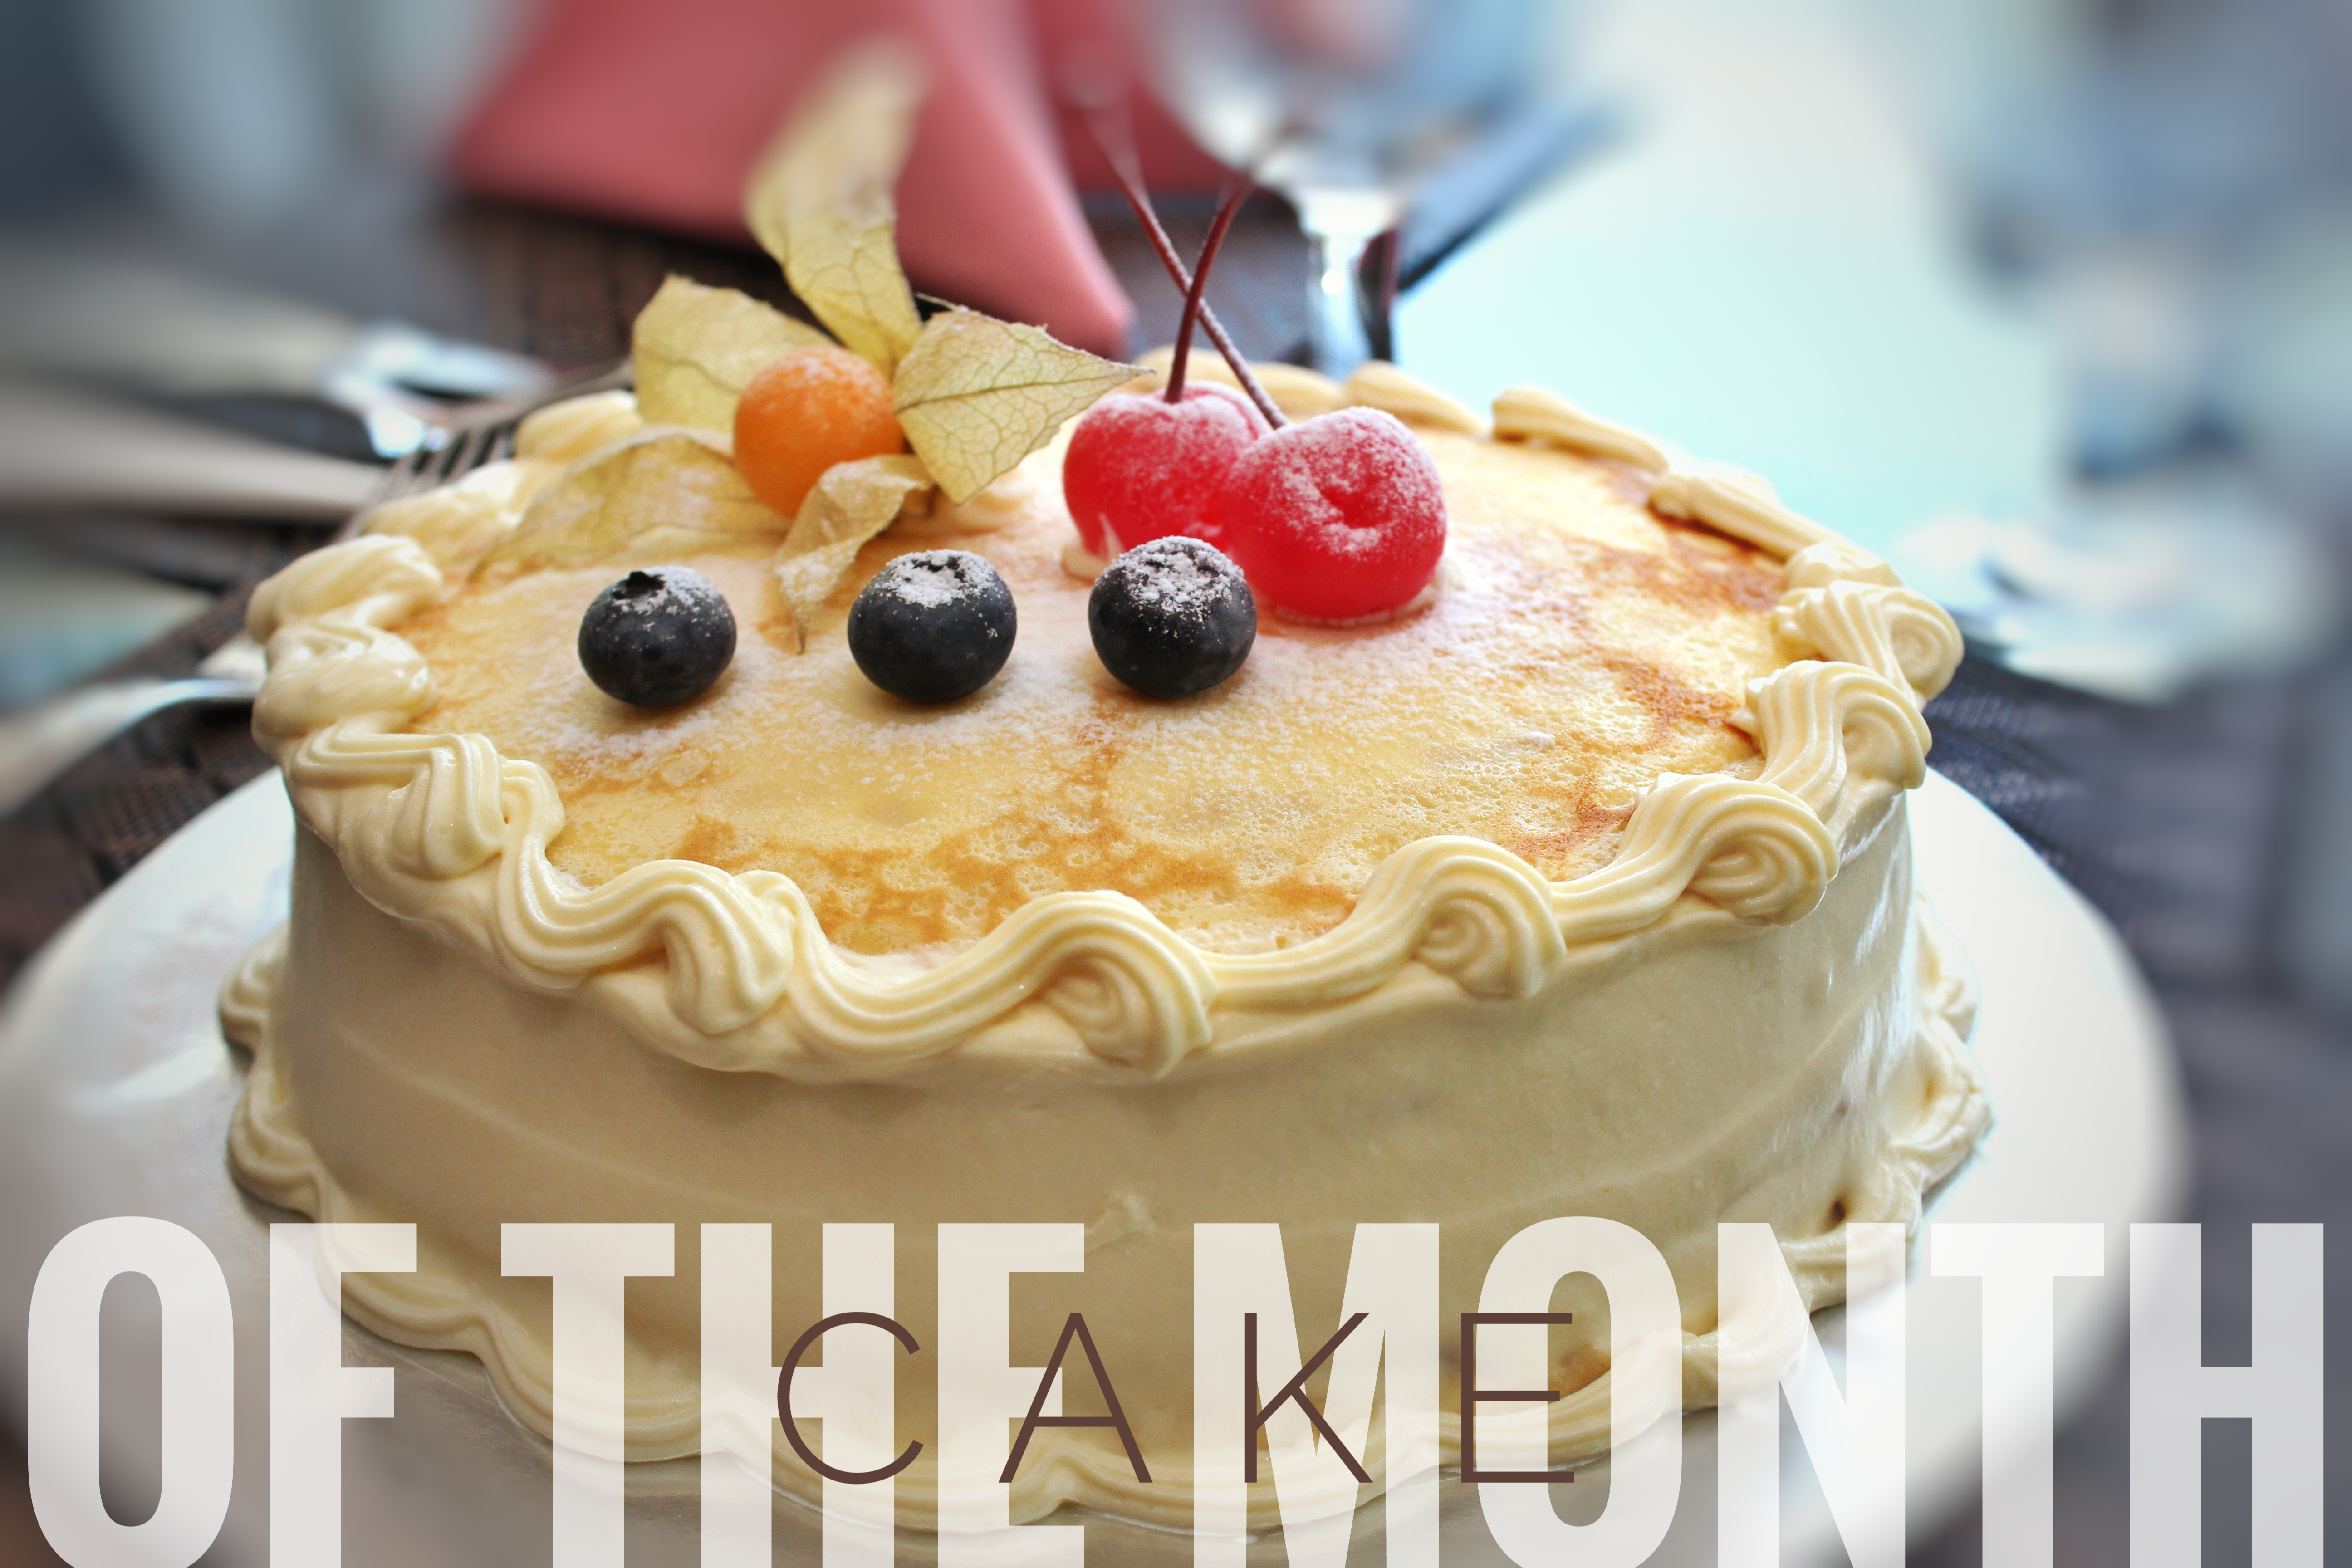 Cake of the Month